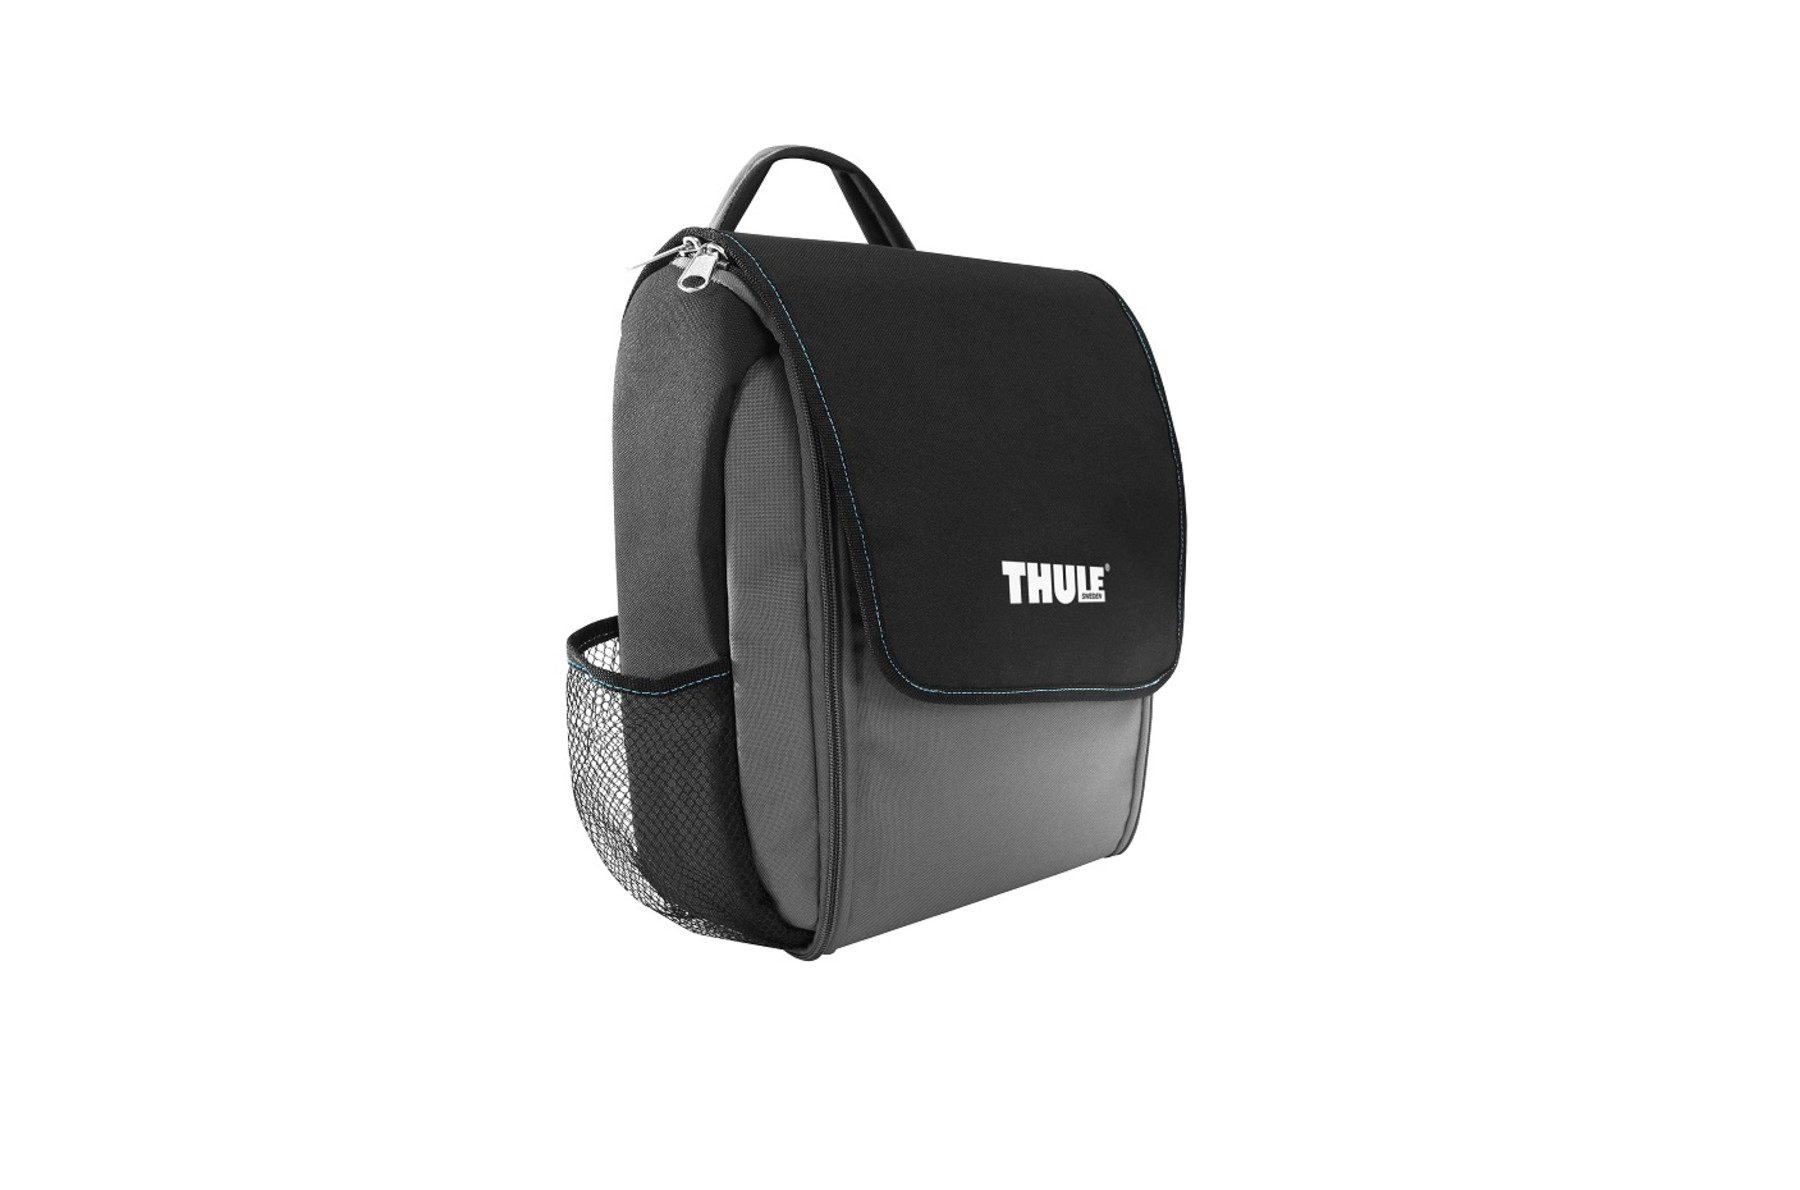 Thule Toiletry Kit Closed